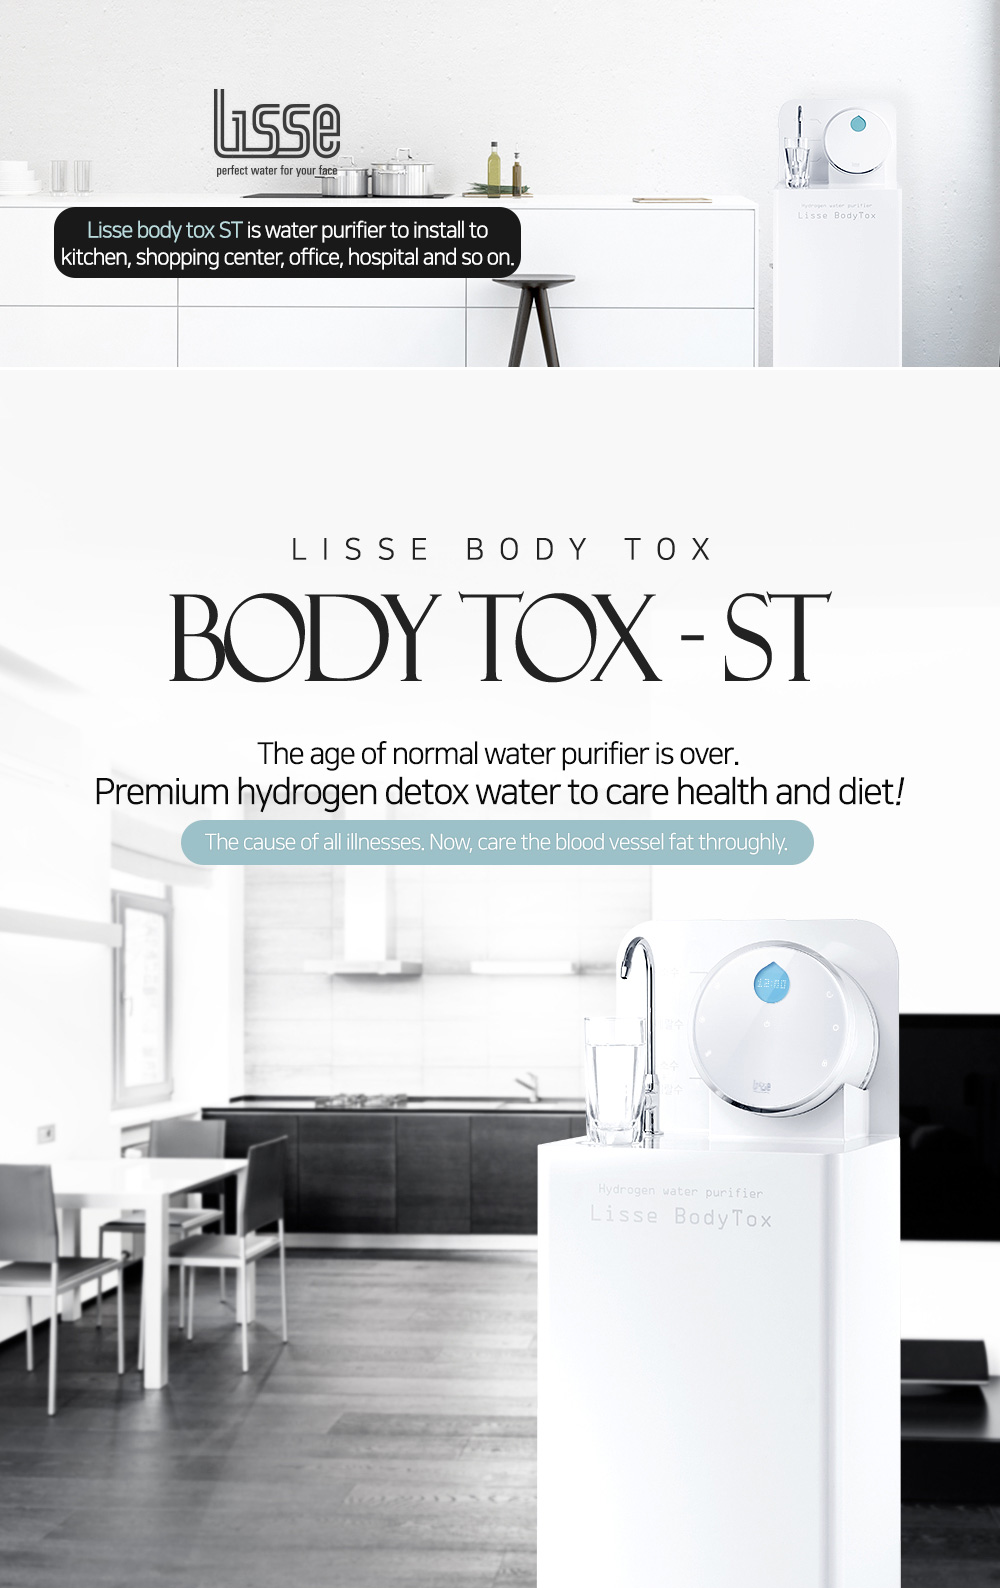 Lisse Body Tox Stand